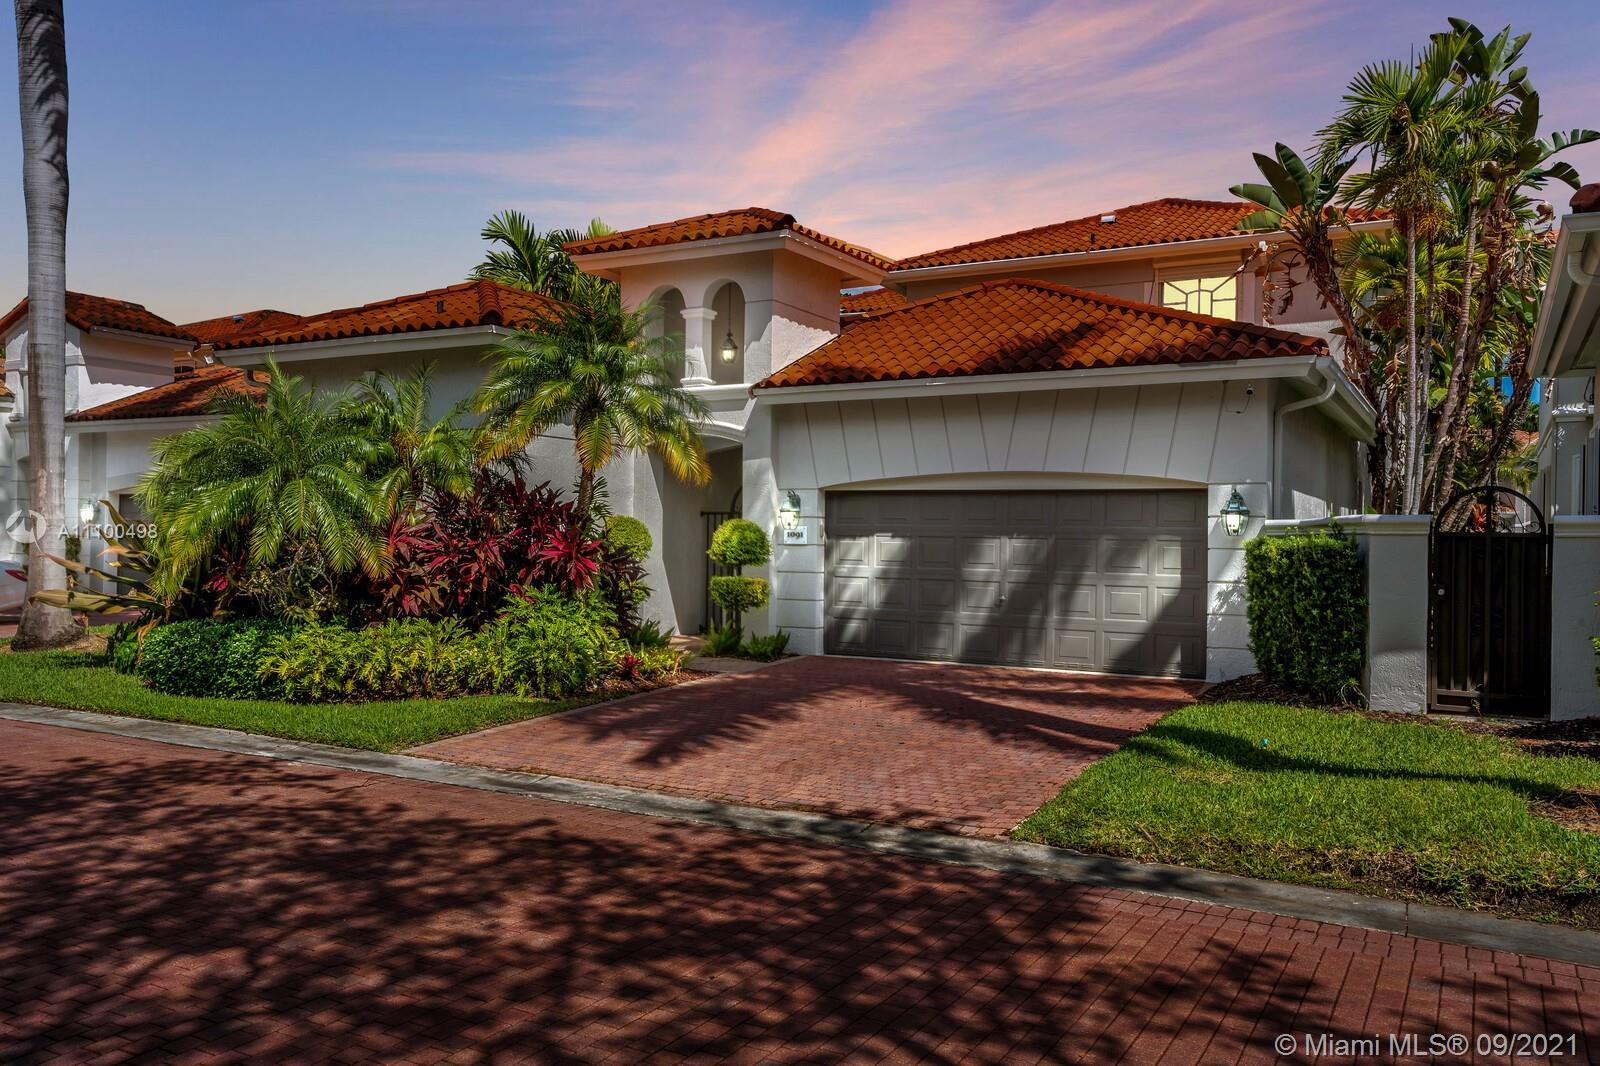 Located in the prestigious gated community of Harbor Islands, this beautiful property features 3 bed